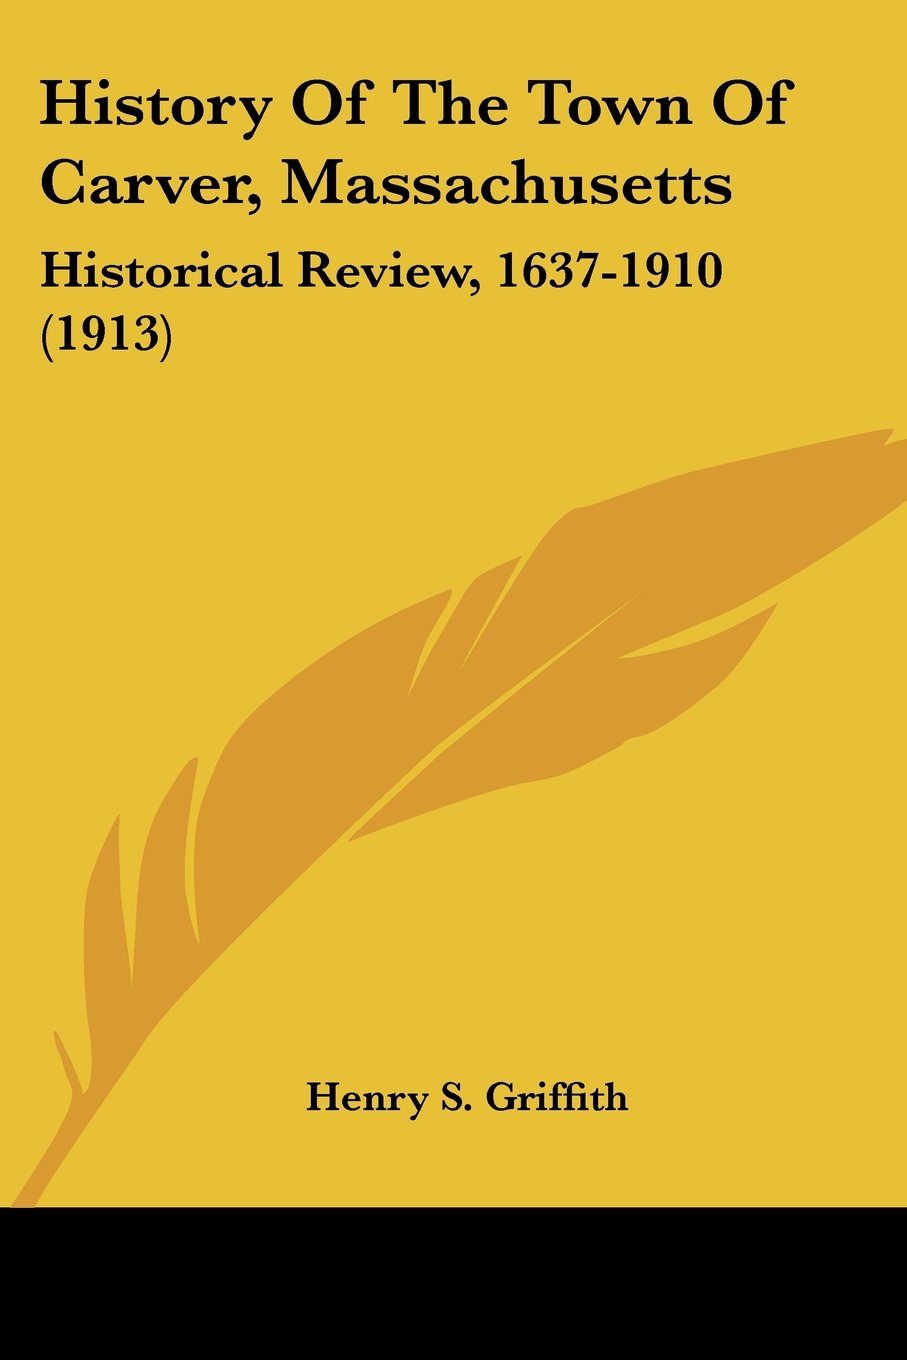 History Of The Town Of Carver, Massachusetts: Historical Review, 1637-1910 (1913) Text fb2 book